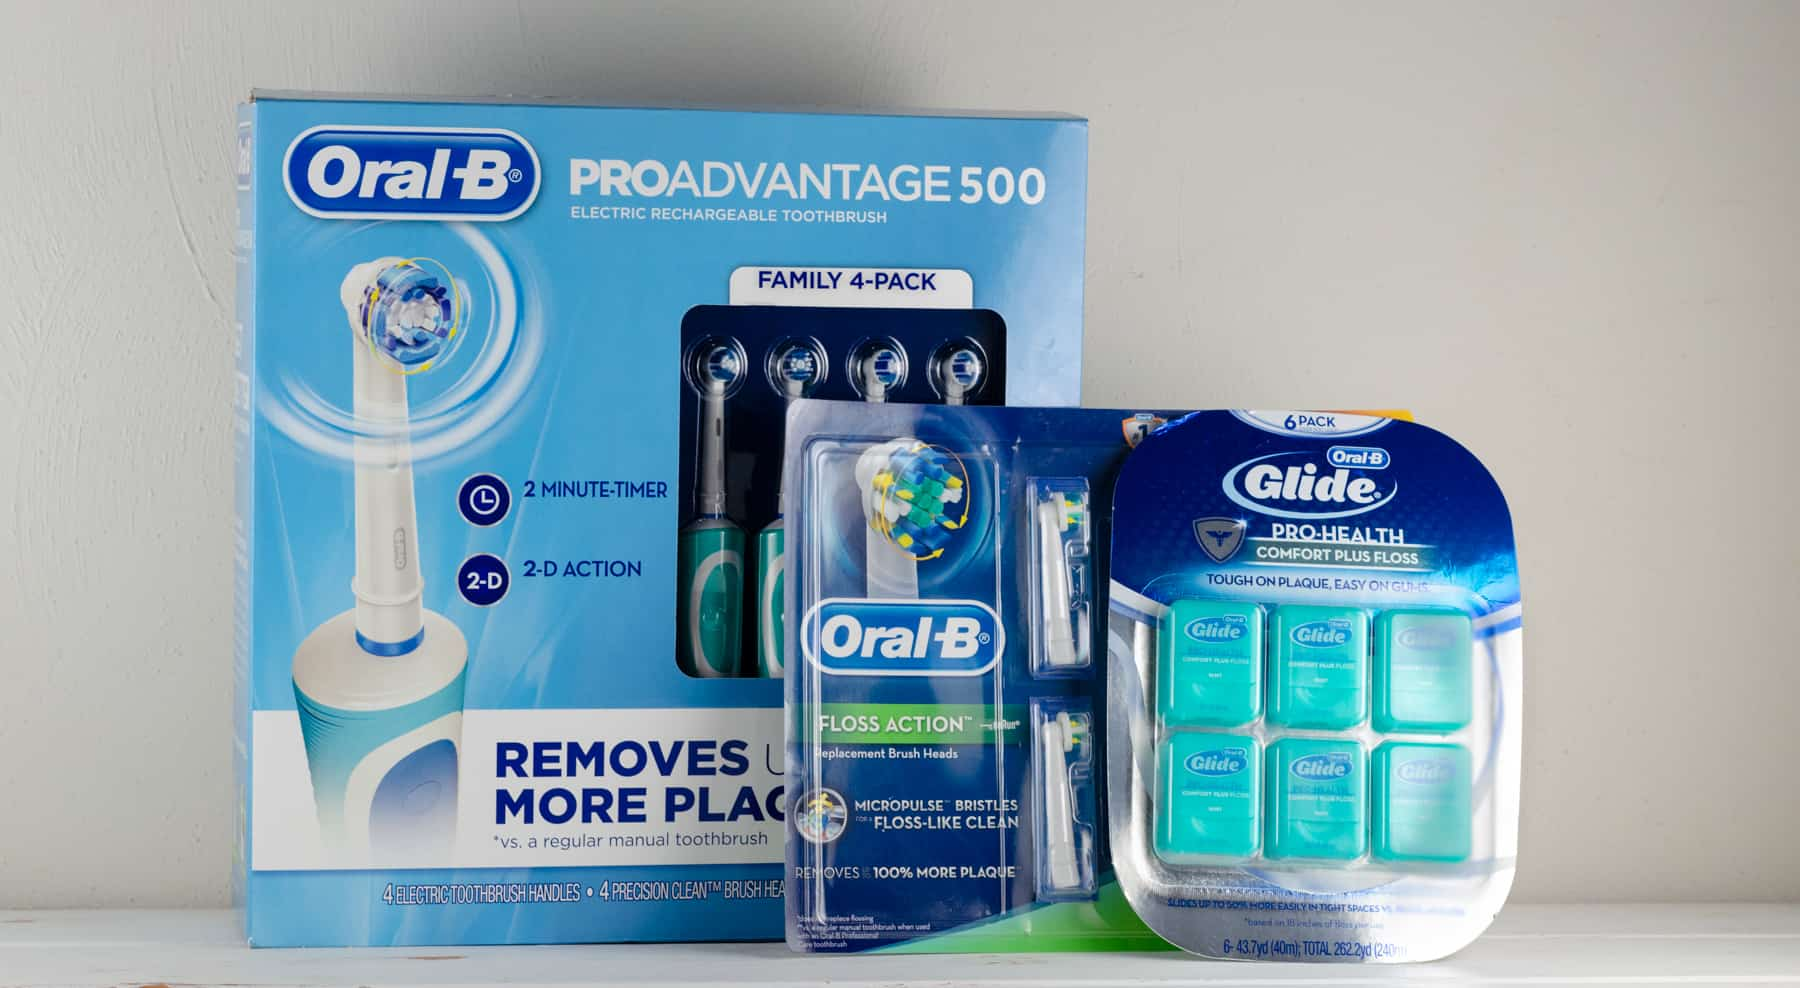 5+ Tips For Beautiful Healthy Smiles picture of oral-b products to help